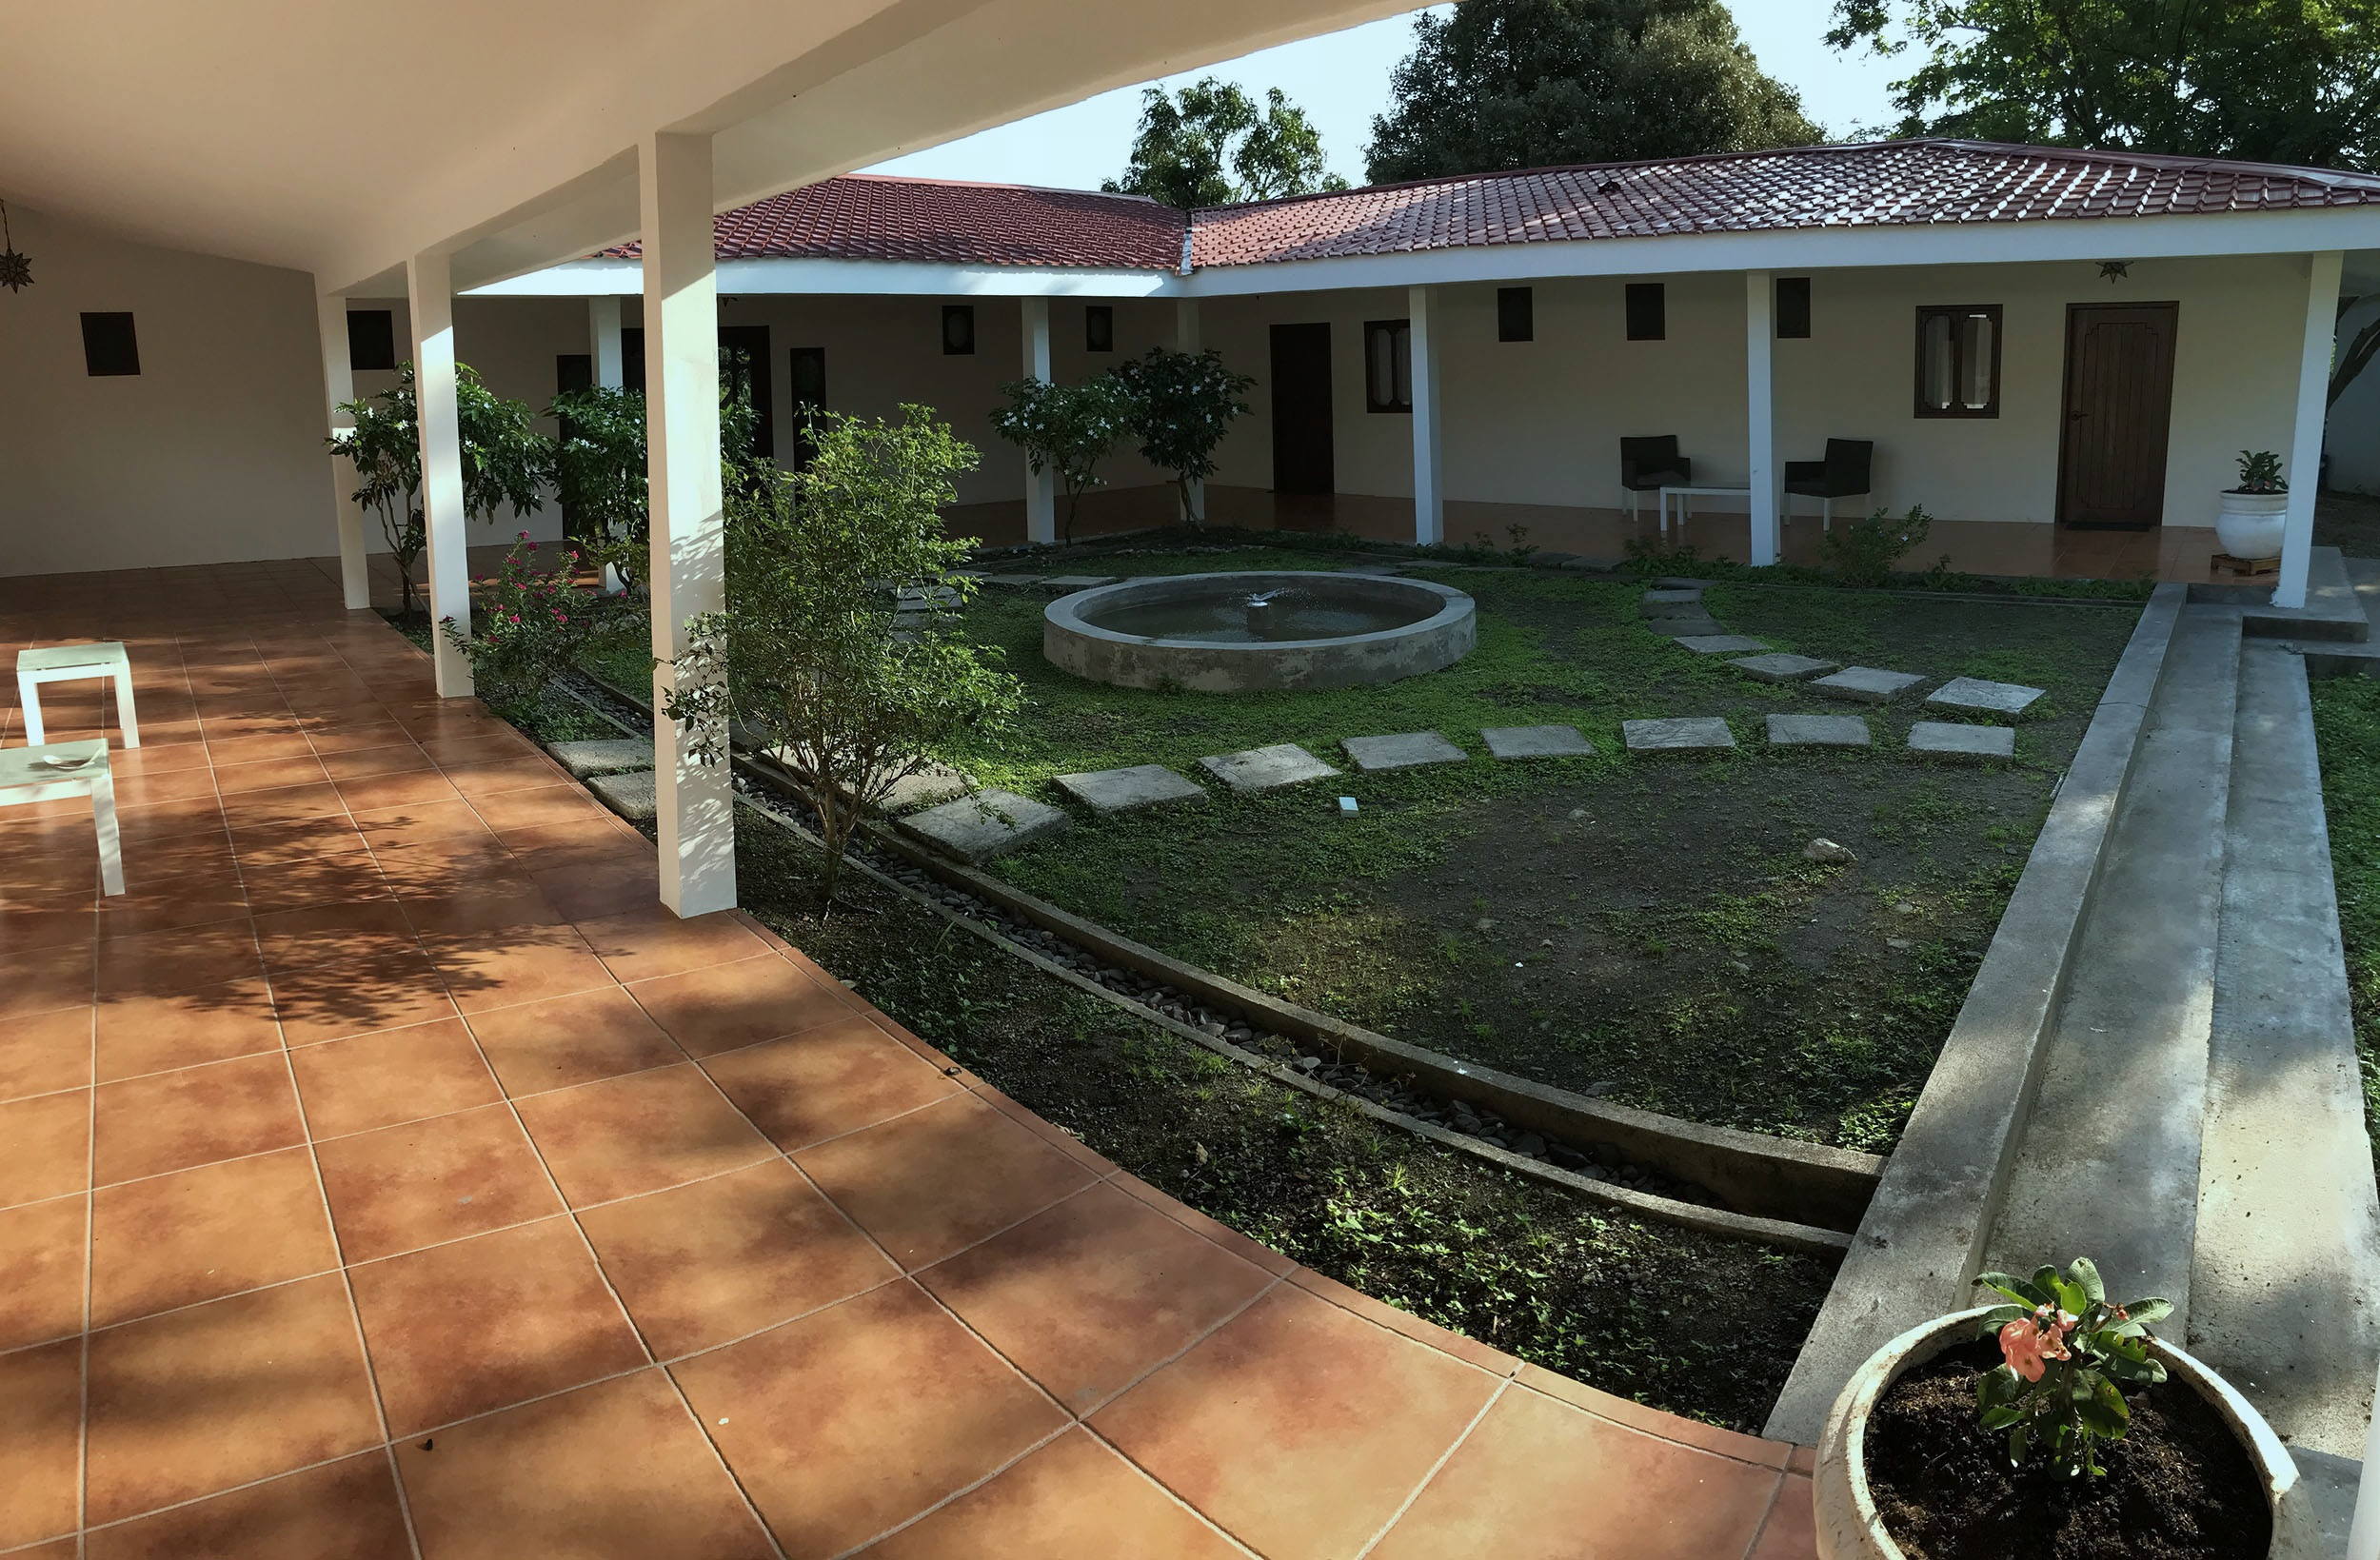 Main courtyard from room 4 entrance